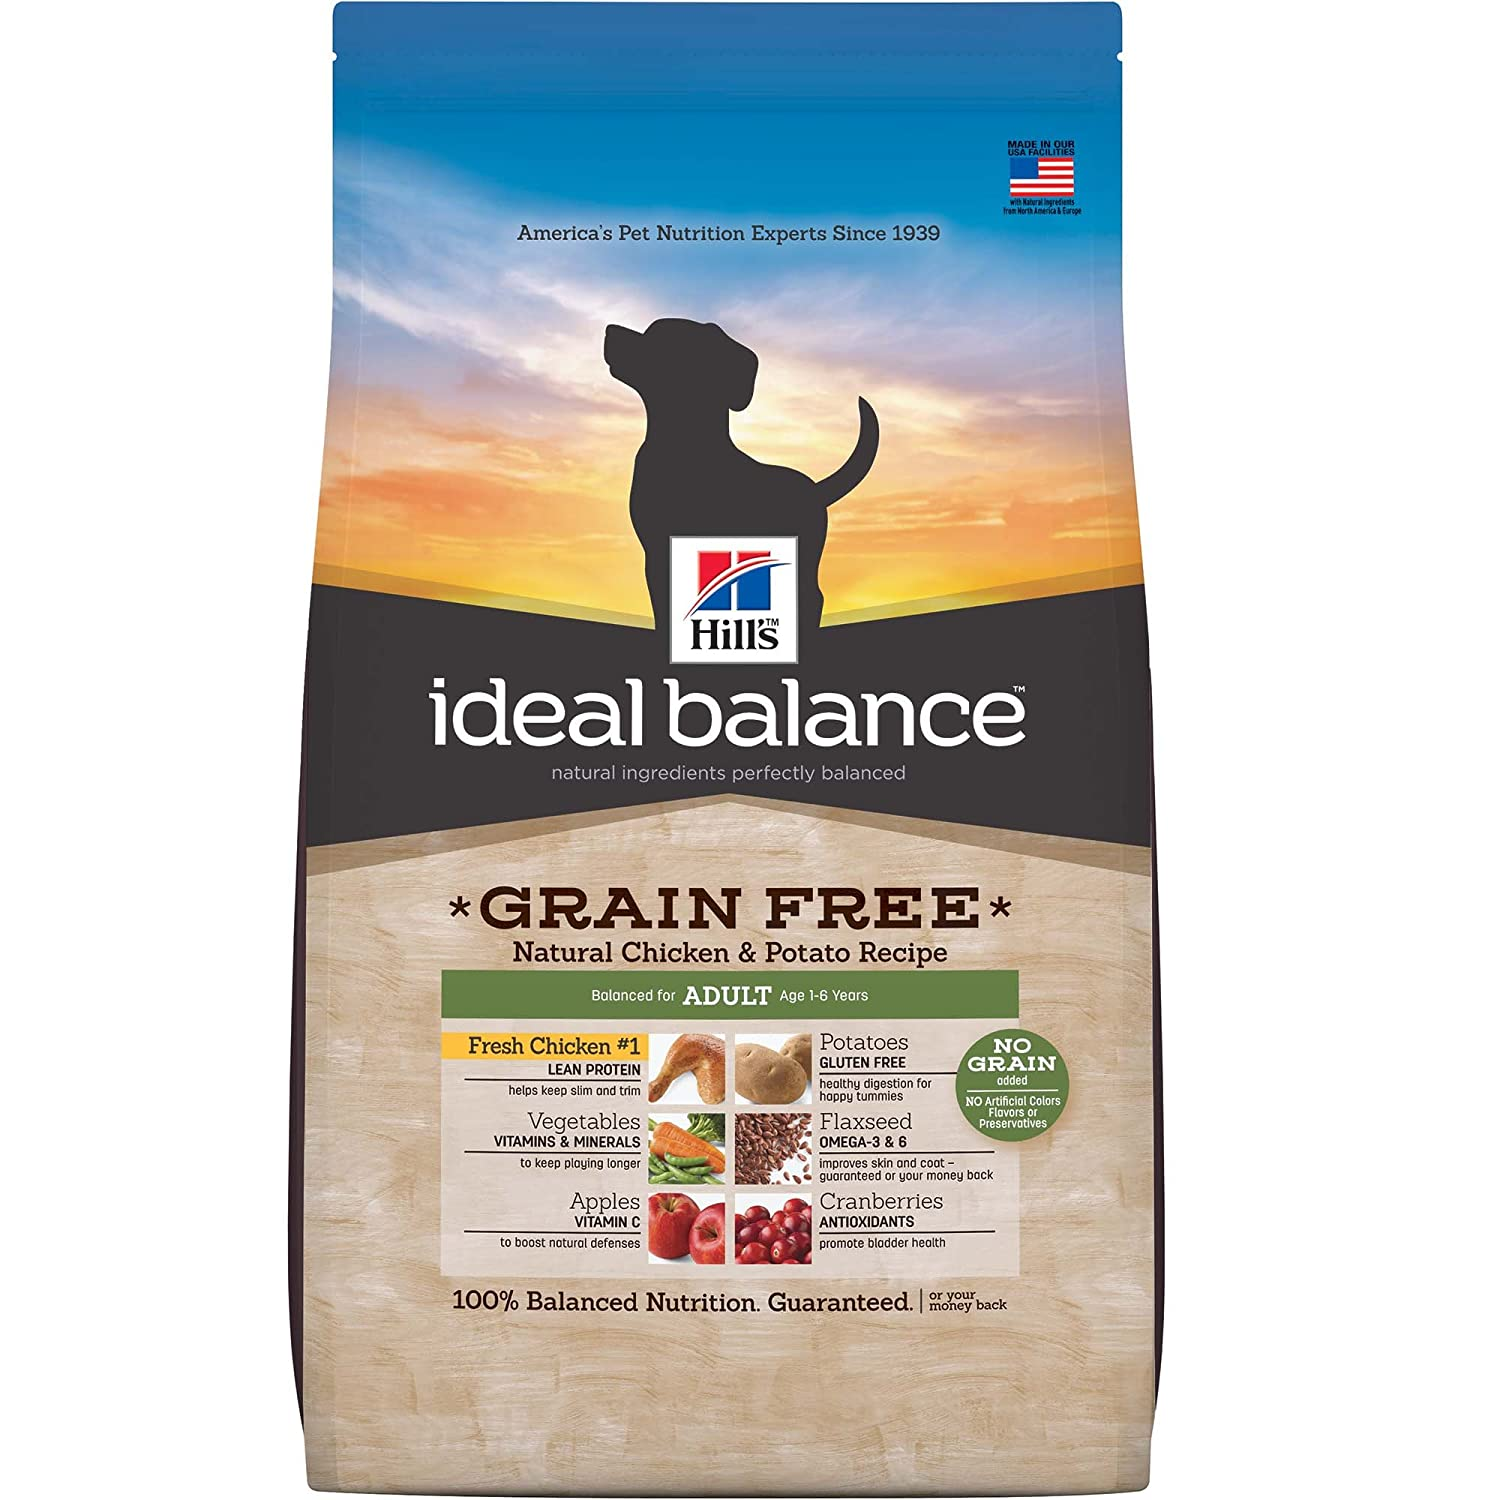 Hill's Ideal Balance Grain Free Adult Dog